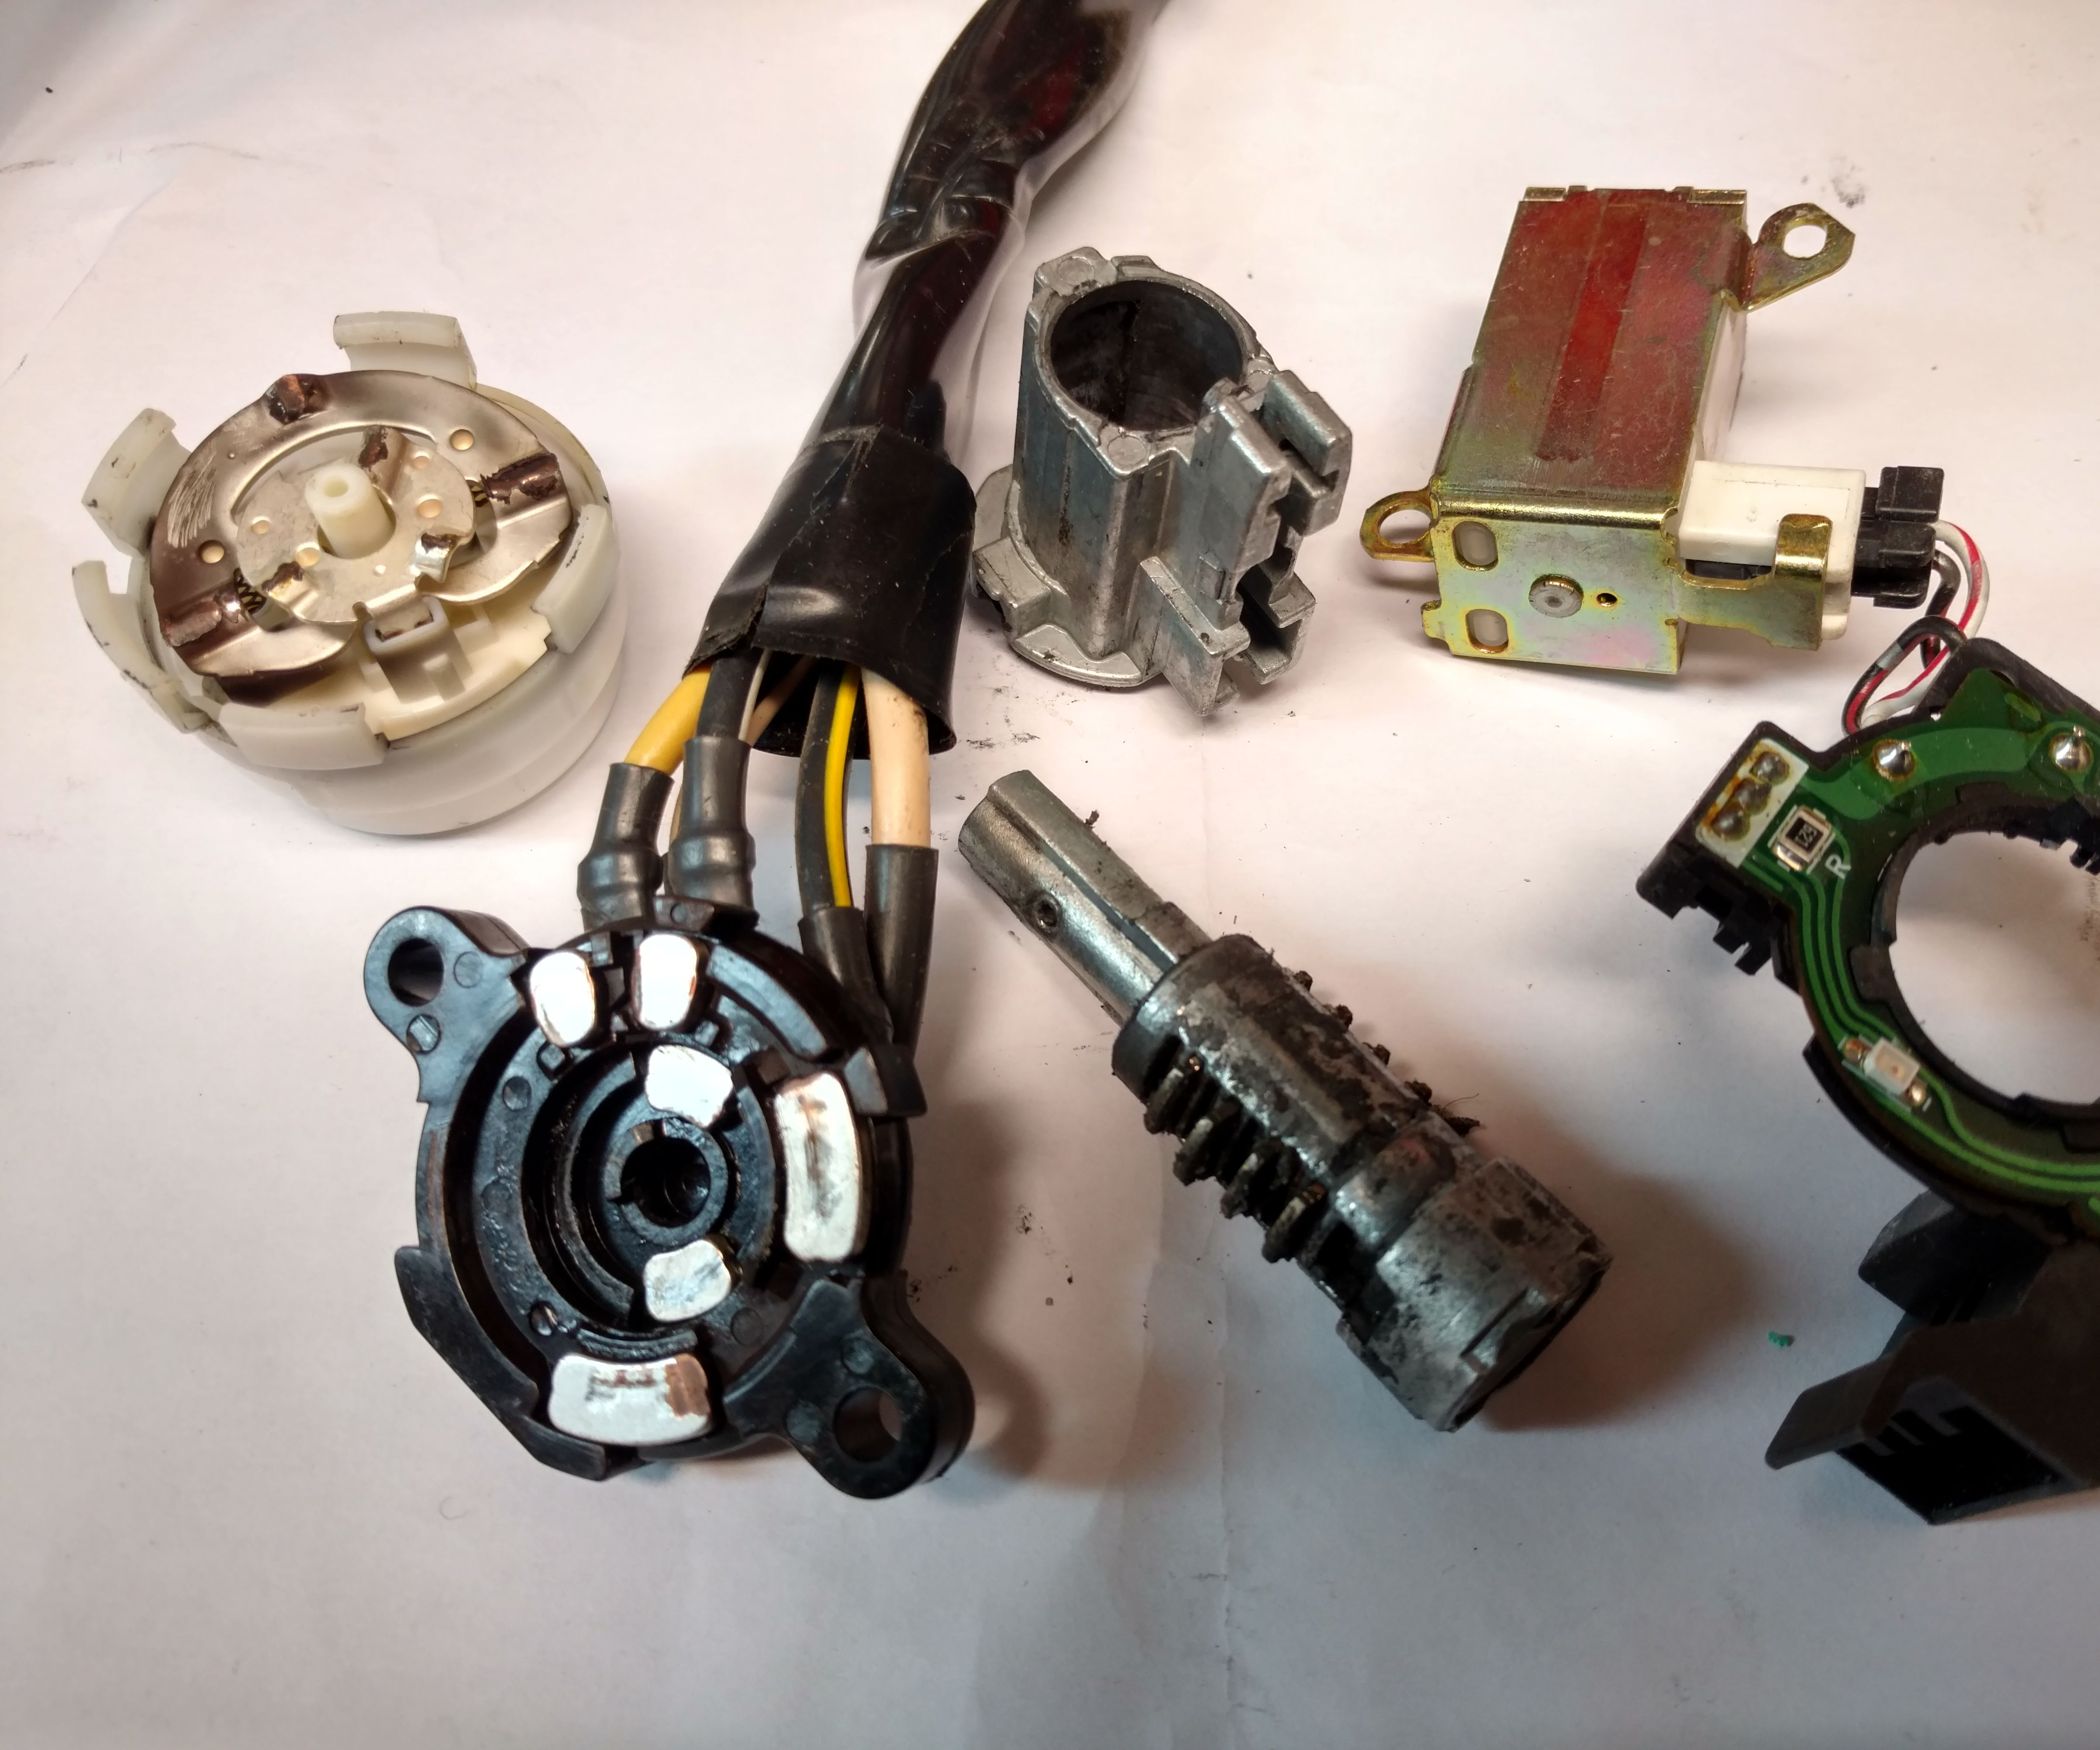 medium resolution of replace ignition assembly on a 2000 honda odyssey